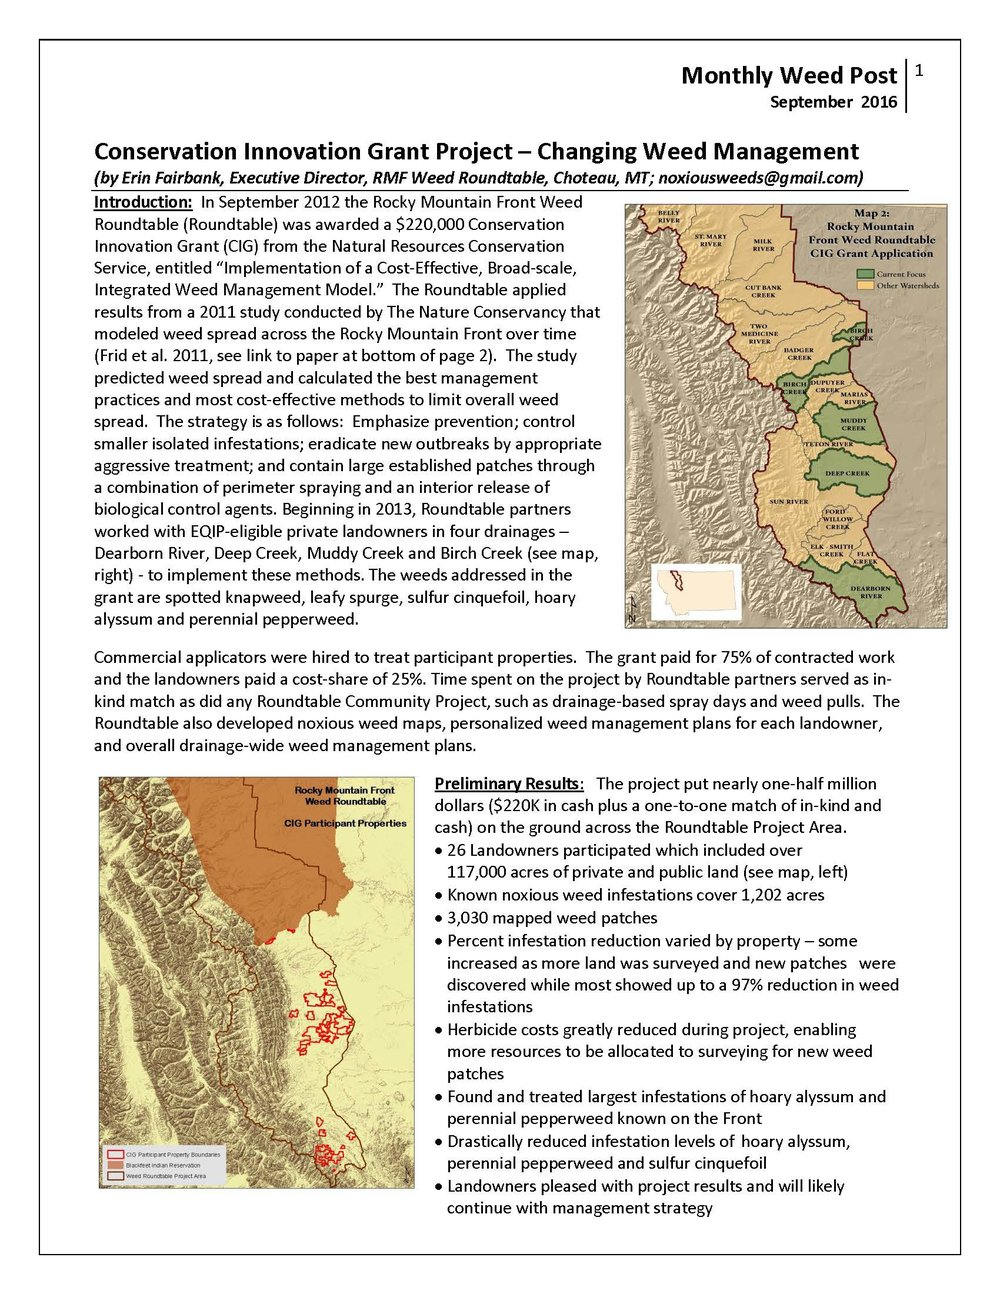 September Weed Post_CIG Project_Rocky Mountain Front Weed Roundtable_Page_1.jpg